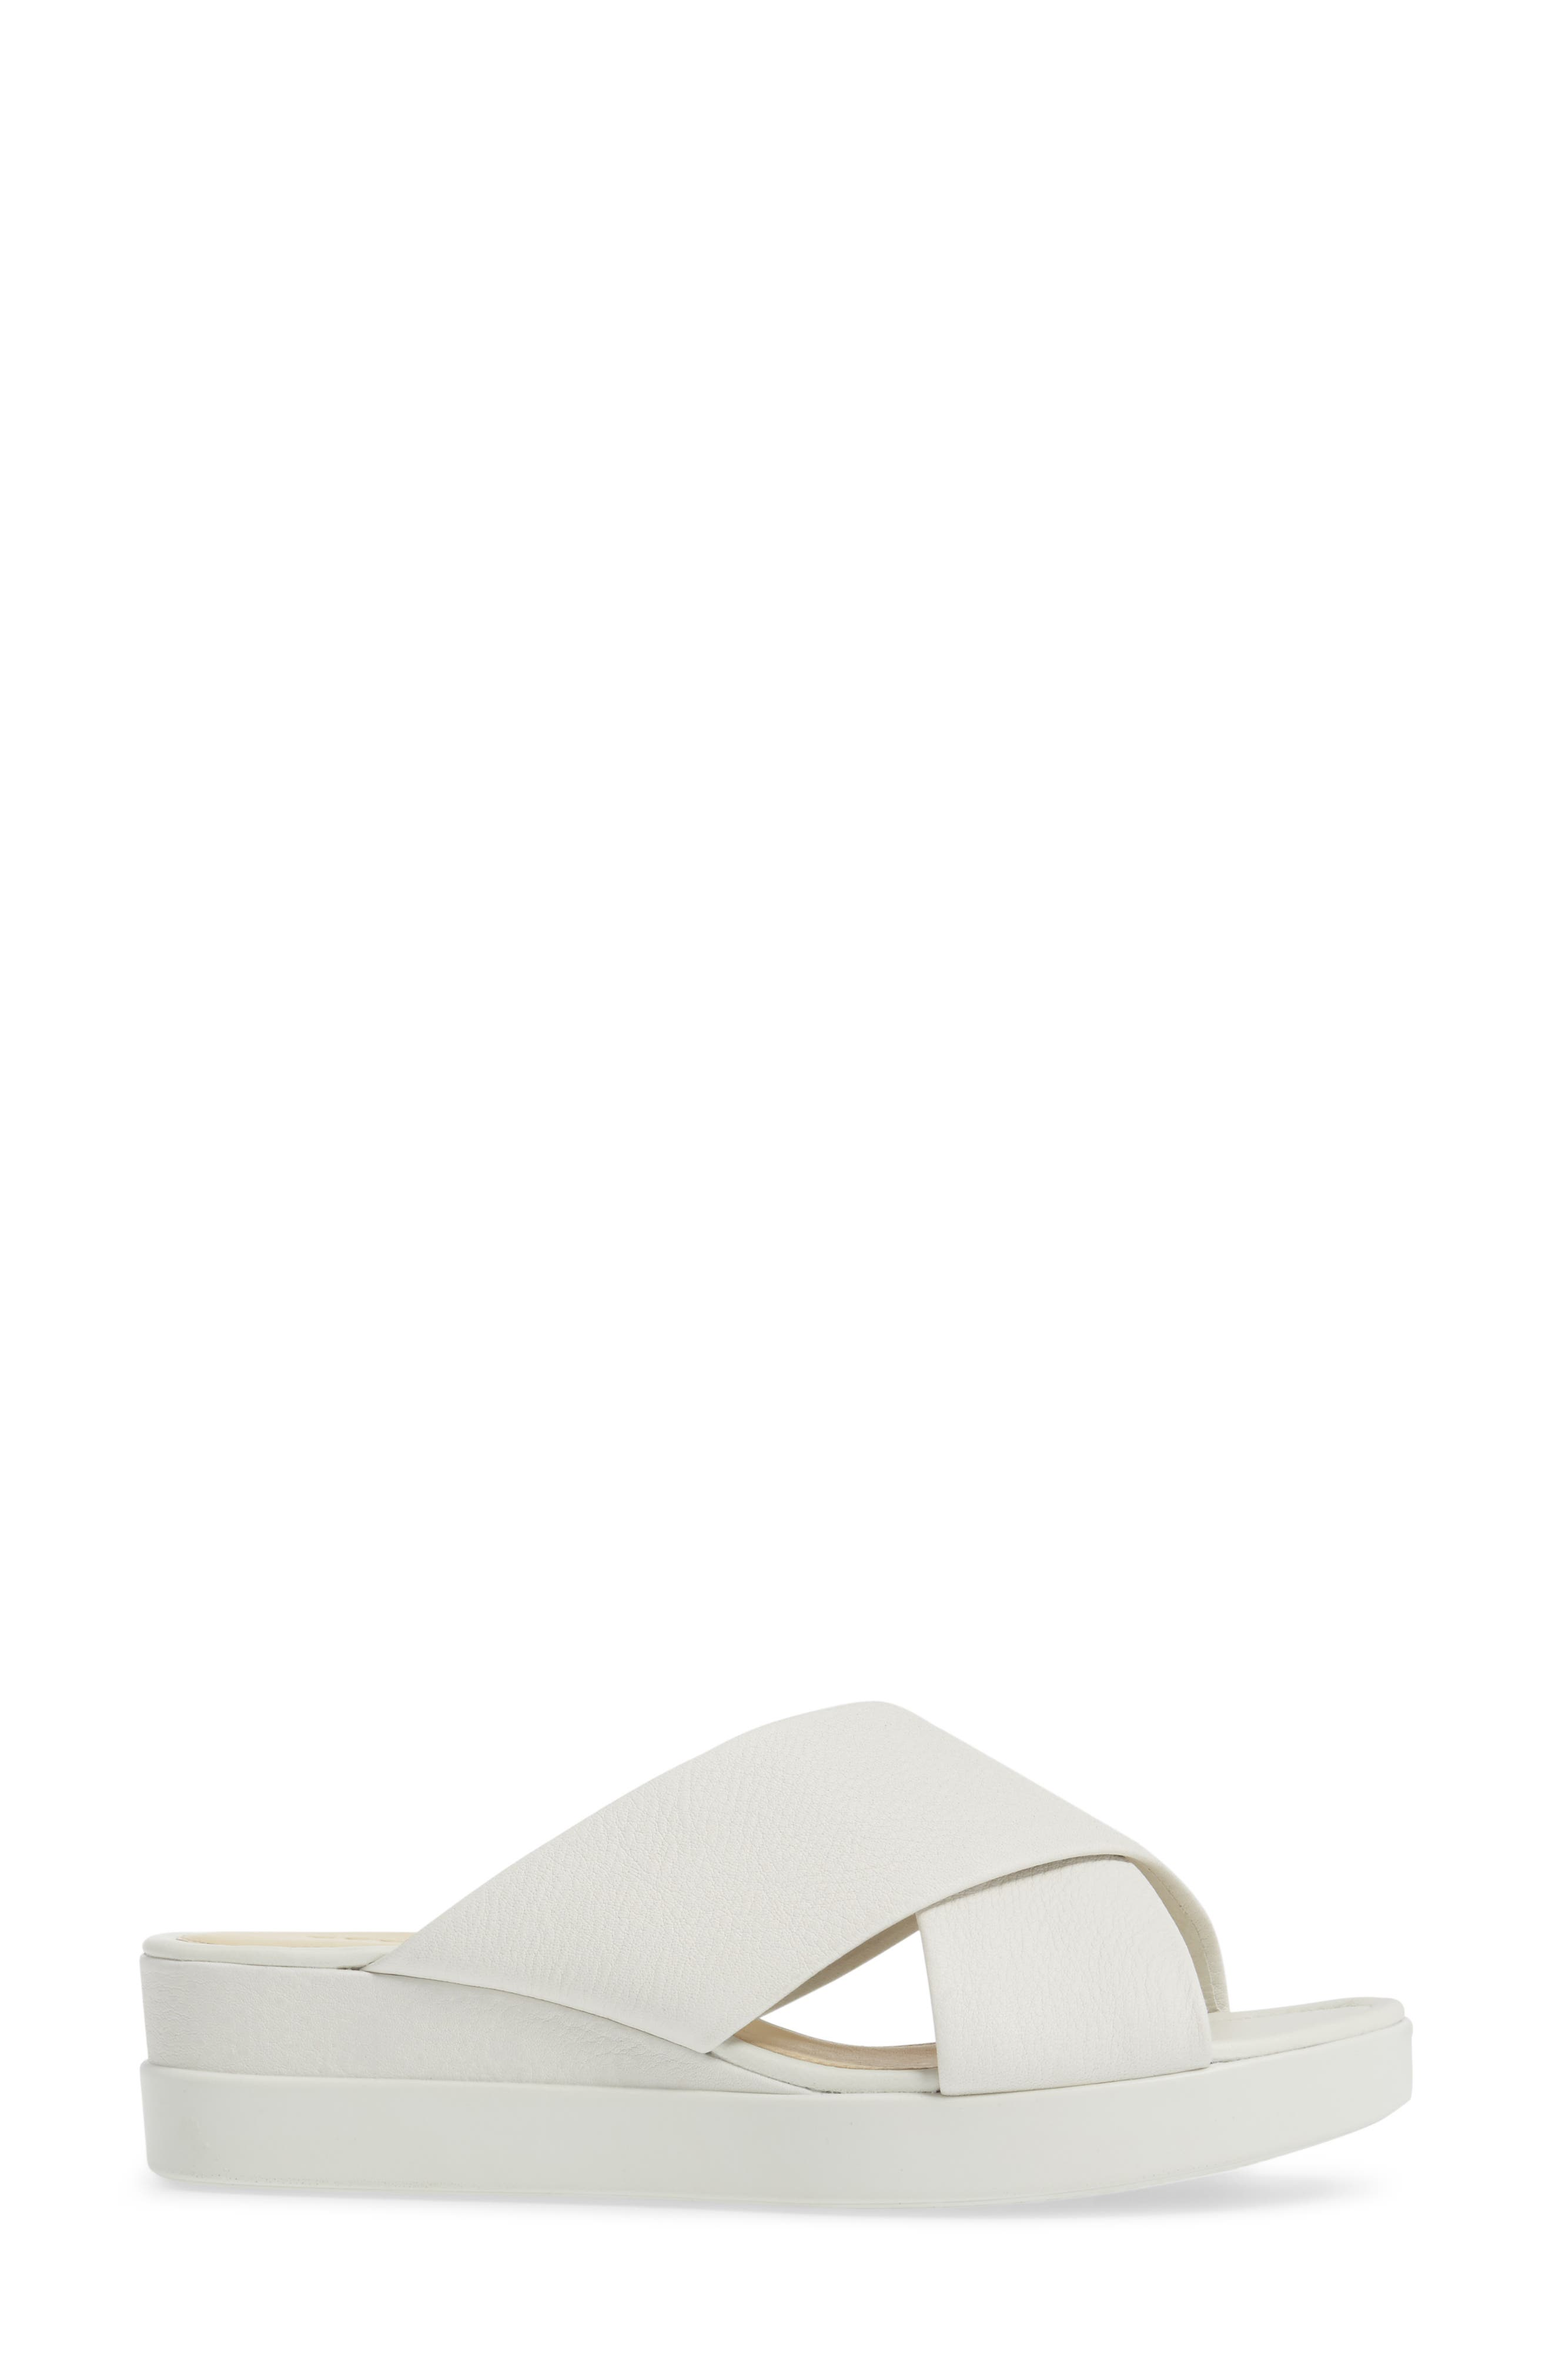 Touch Slide Sandal,                             Alternate thumbnail 11, color,